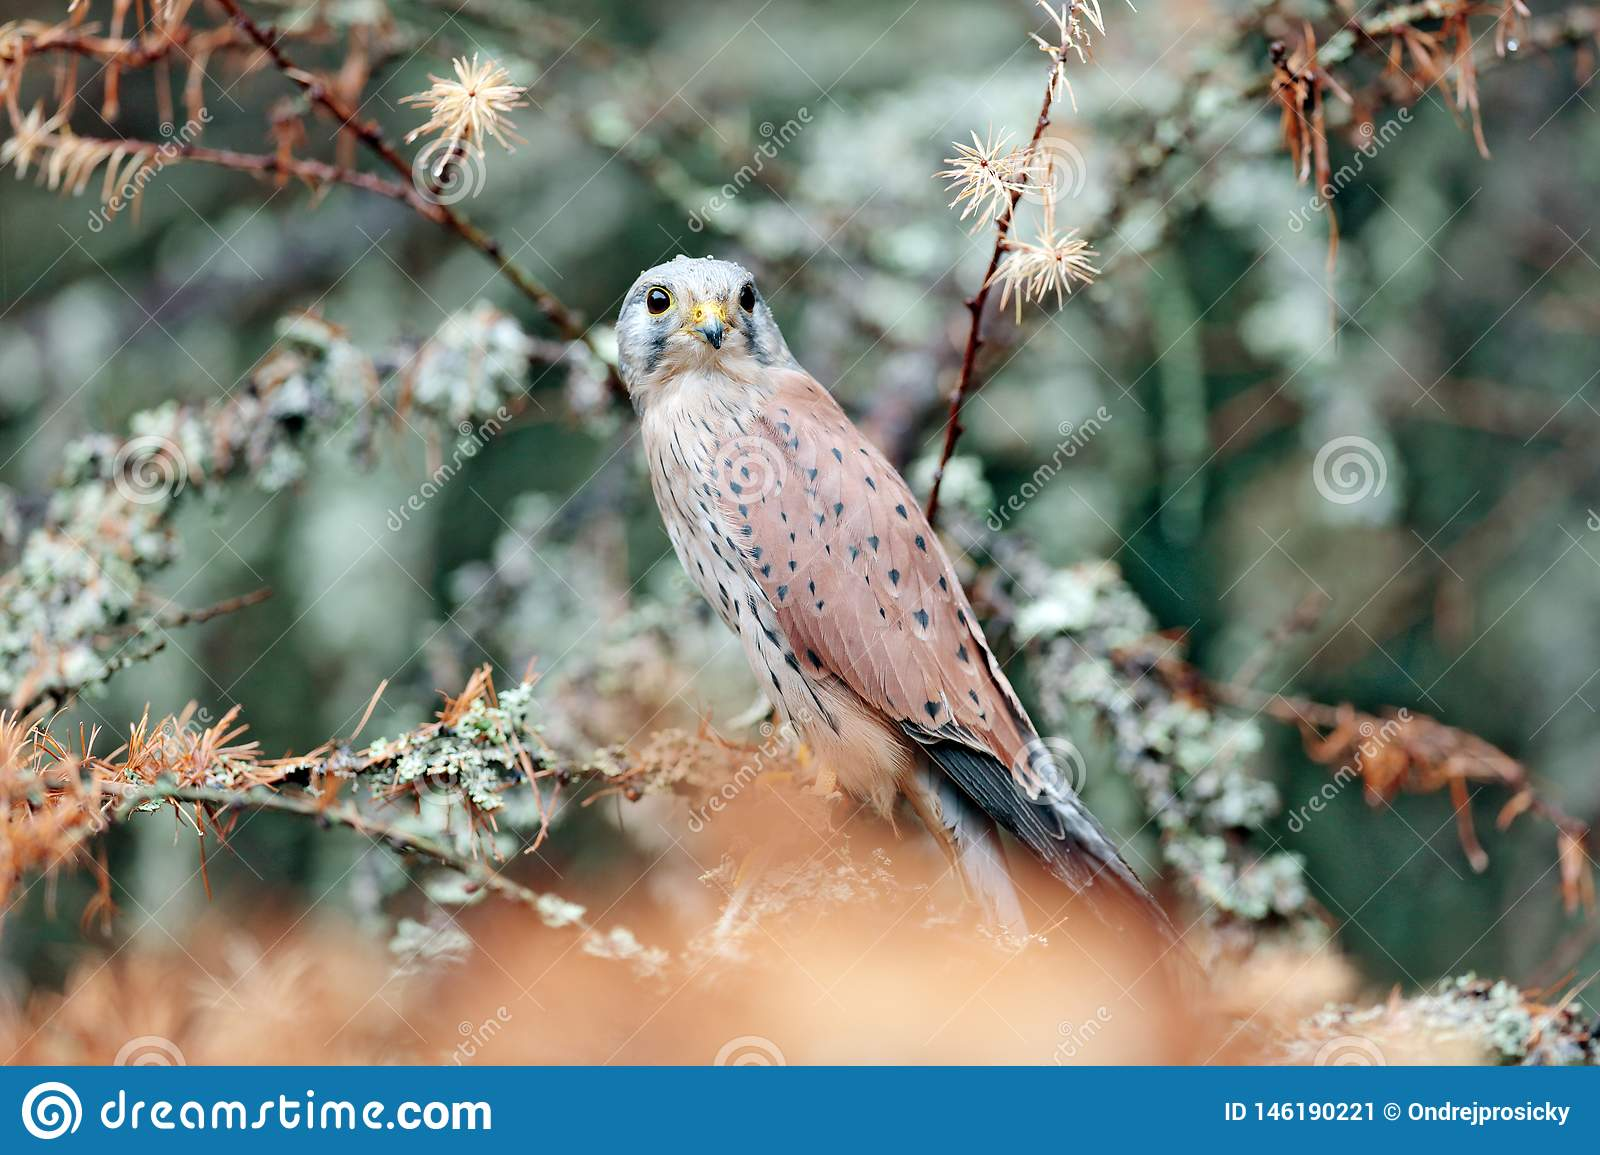 Common Kestrel, Falco tinnunculus, little bird of prey sitting in orange autumn forest, Germany. Larch tree with fall dawn leaves